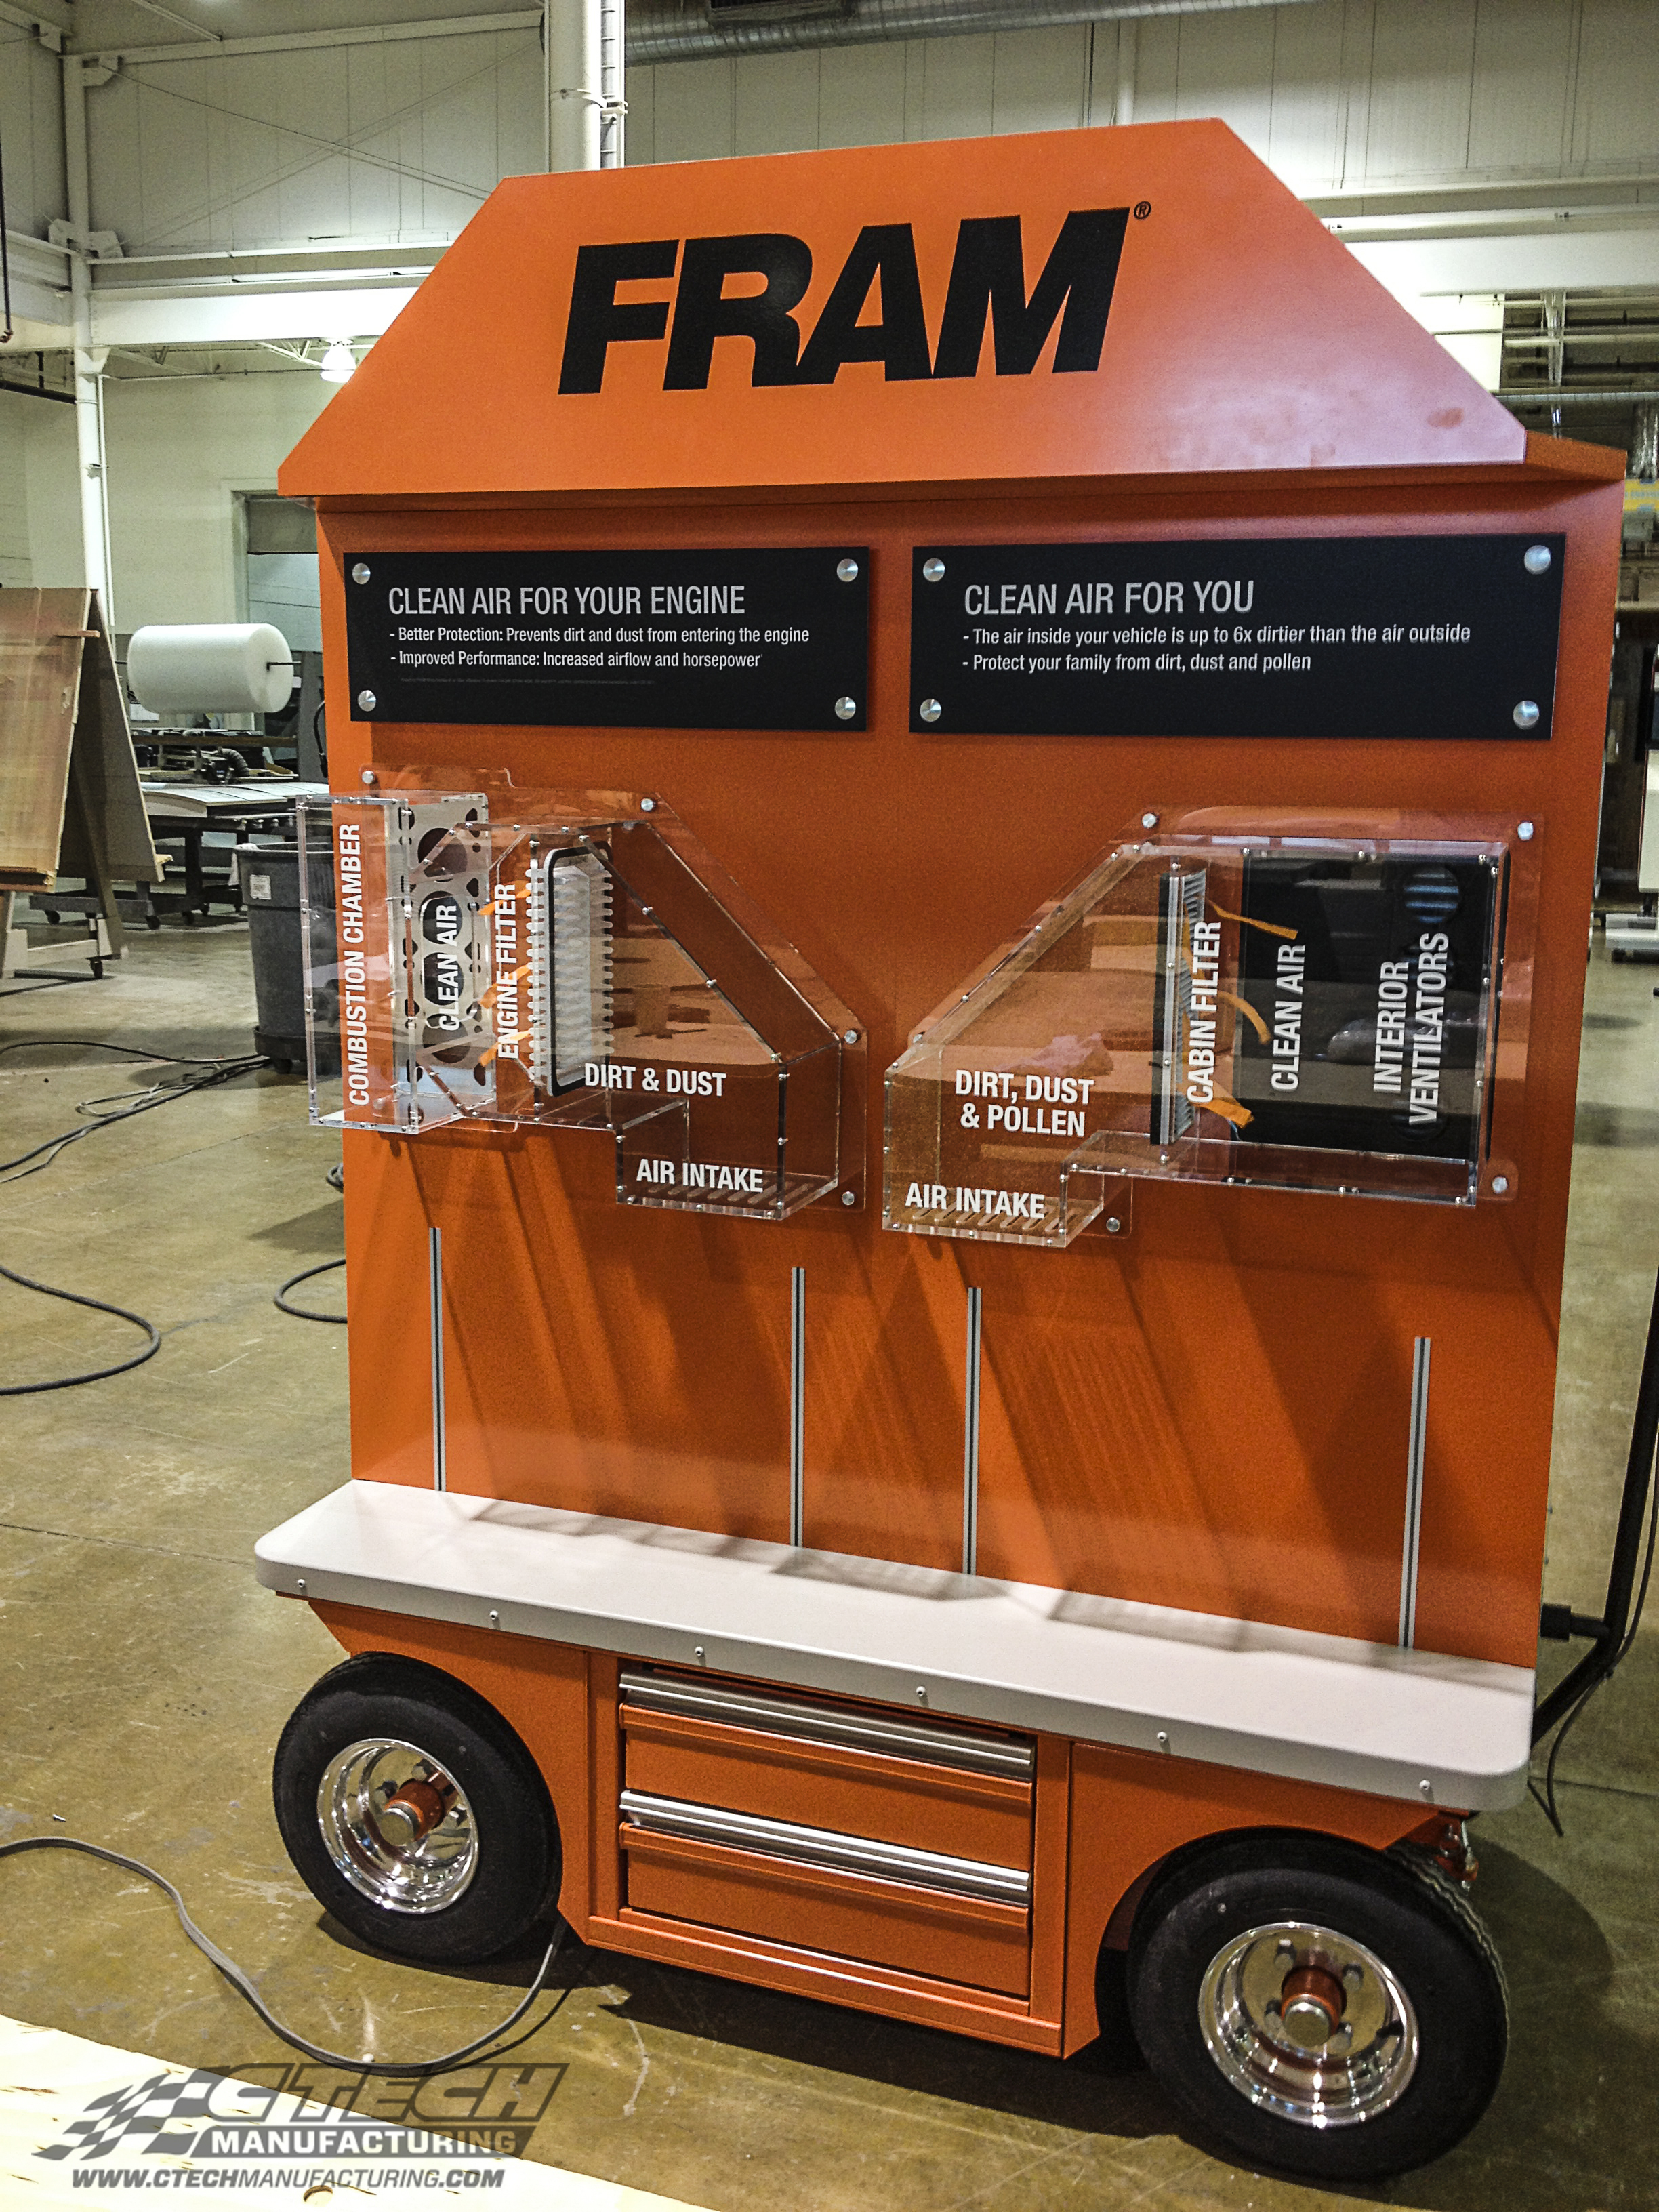 This awesome display cart was put together for FRAM air filters to demonstrate their product at various events and trade shows. Not all interactive display carts are created equal, and CTECH display carts are engineered to be the best!